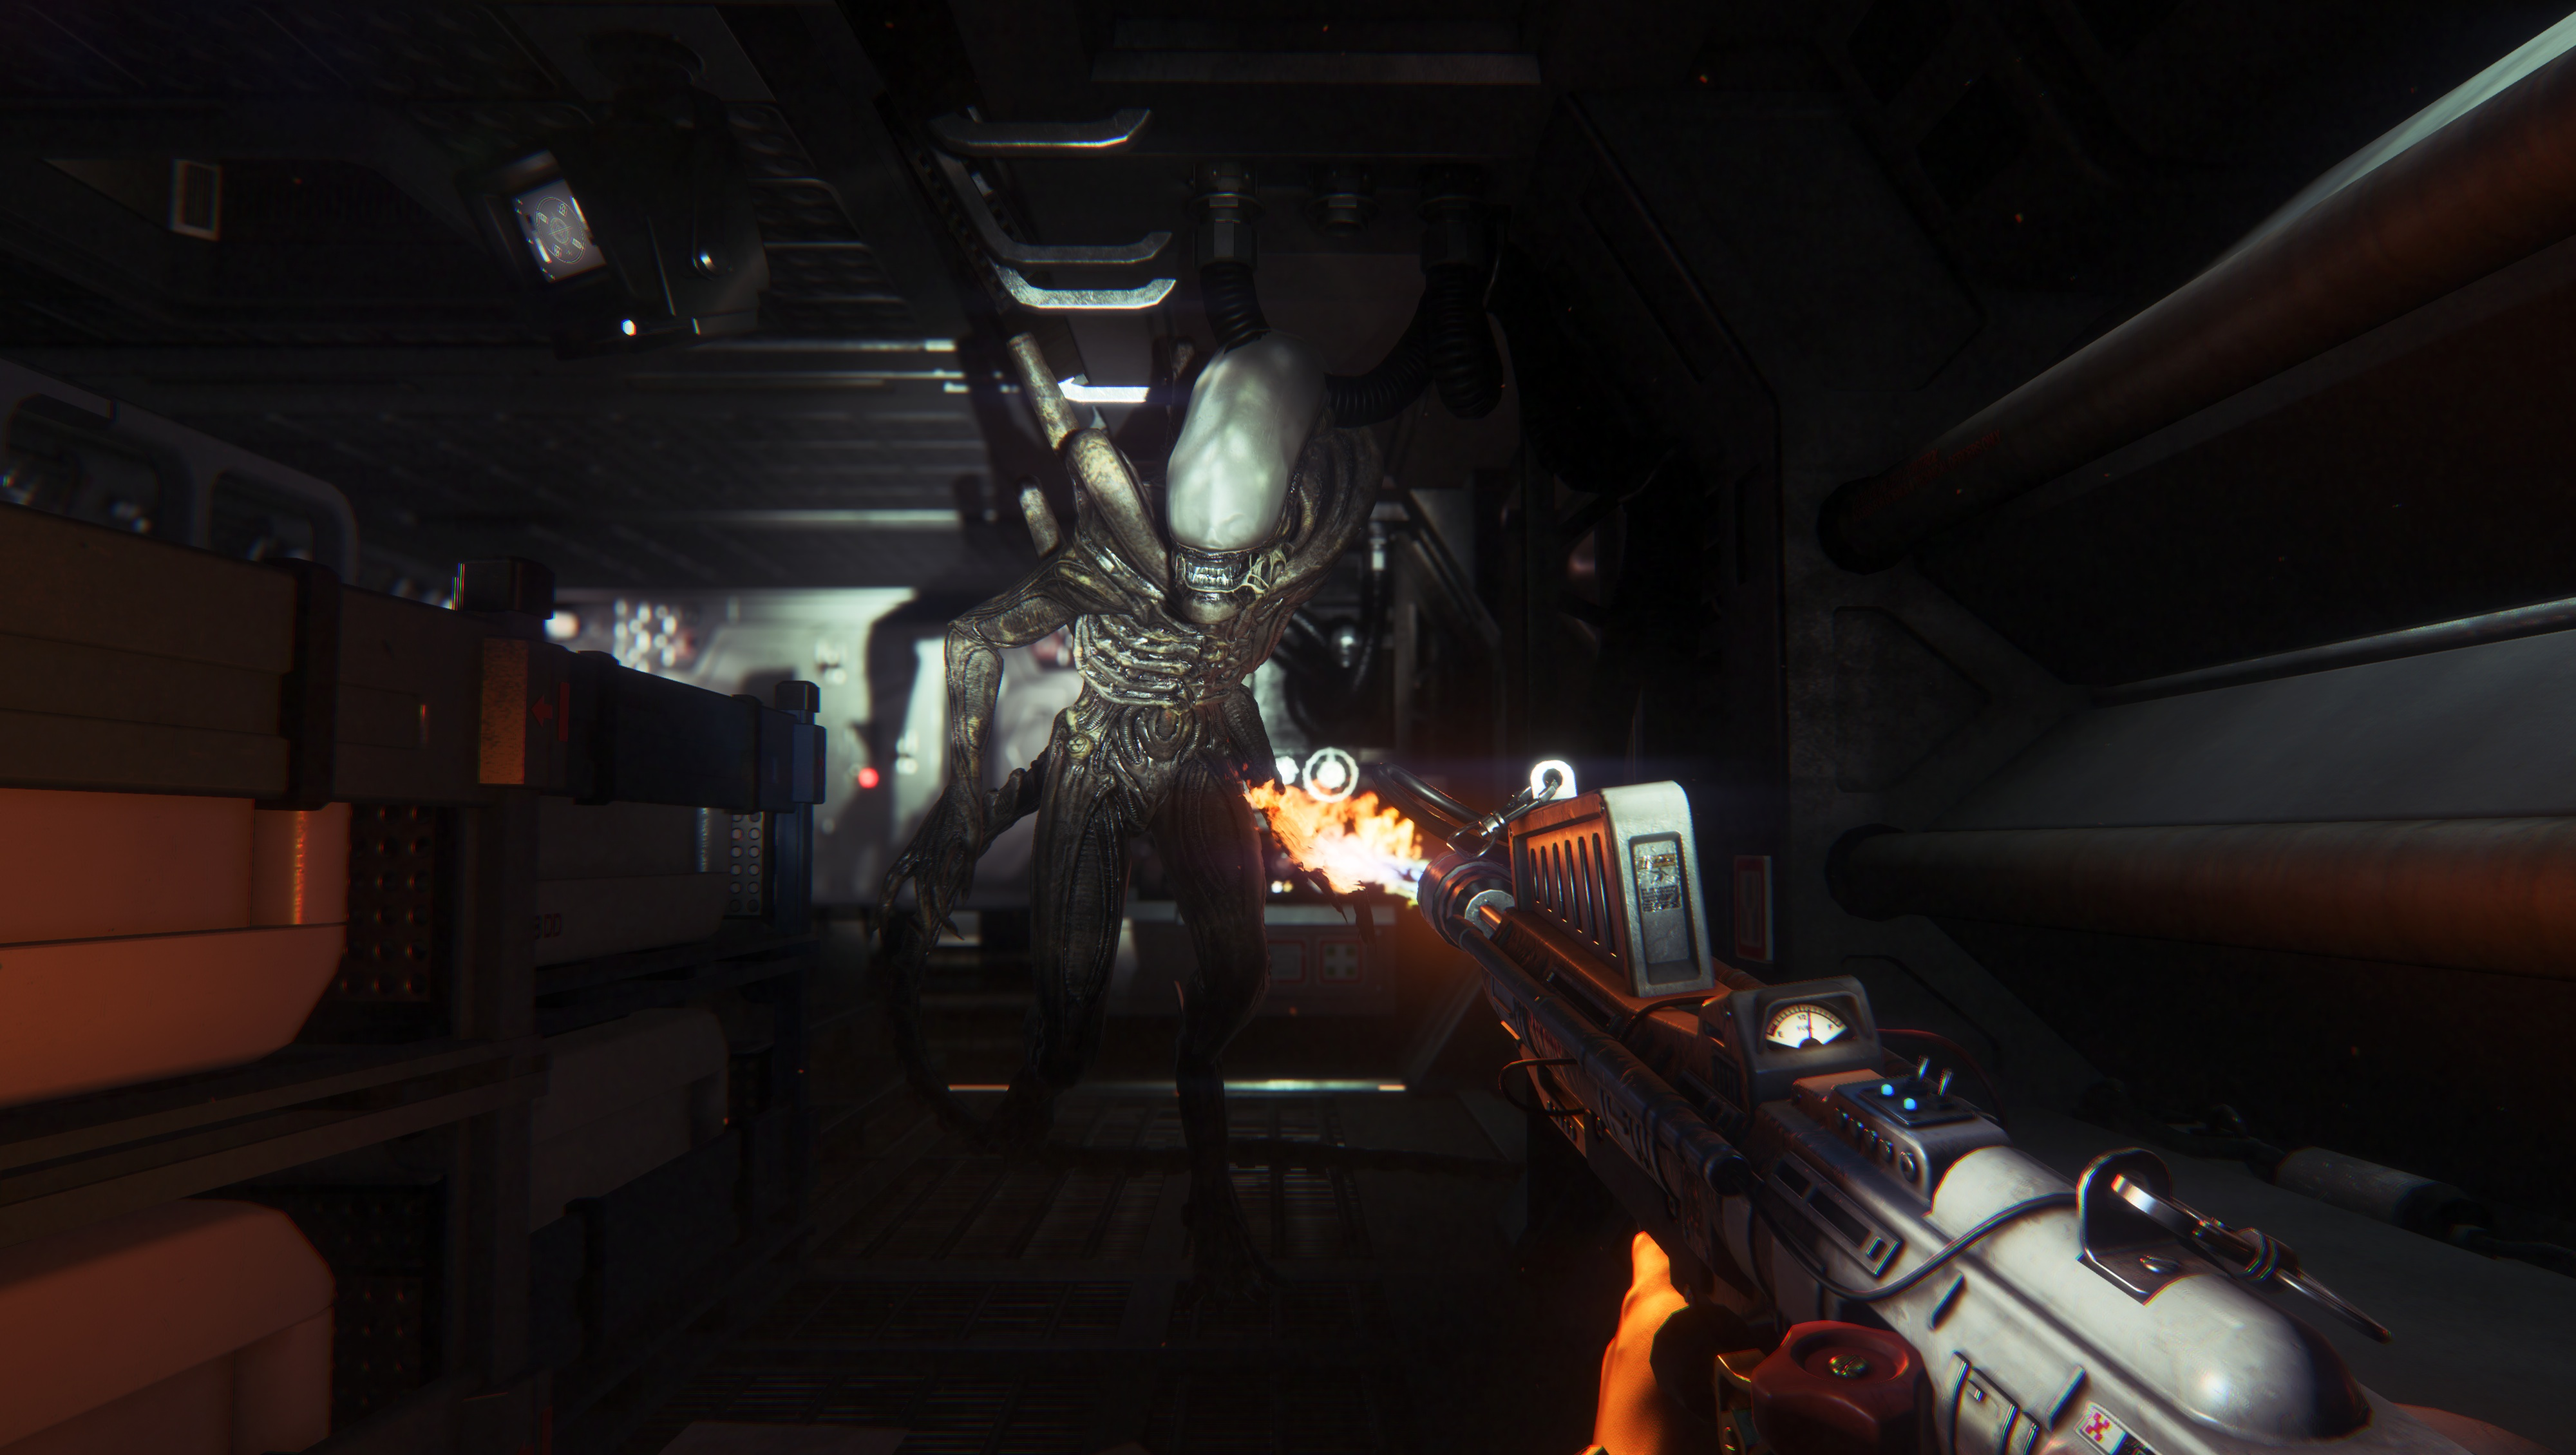 لعبة Alien Isolation